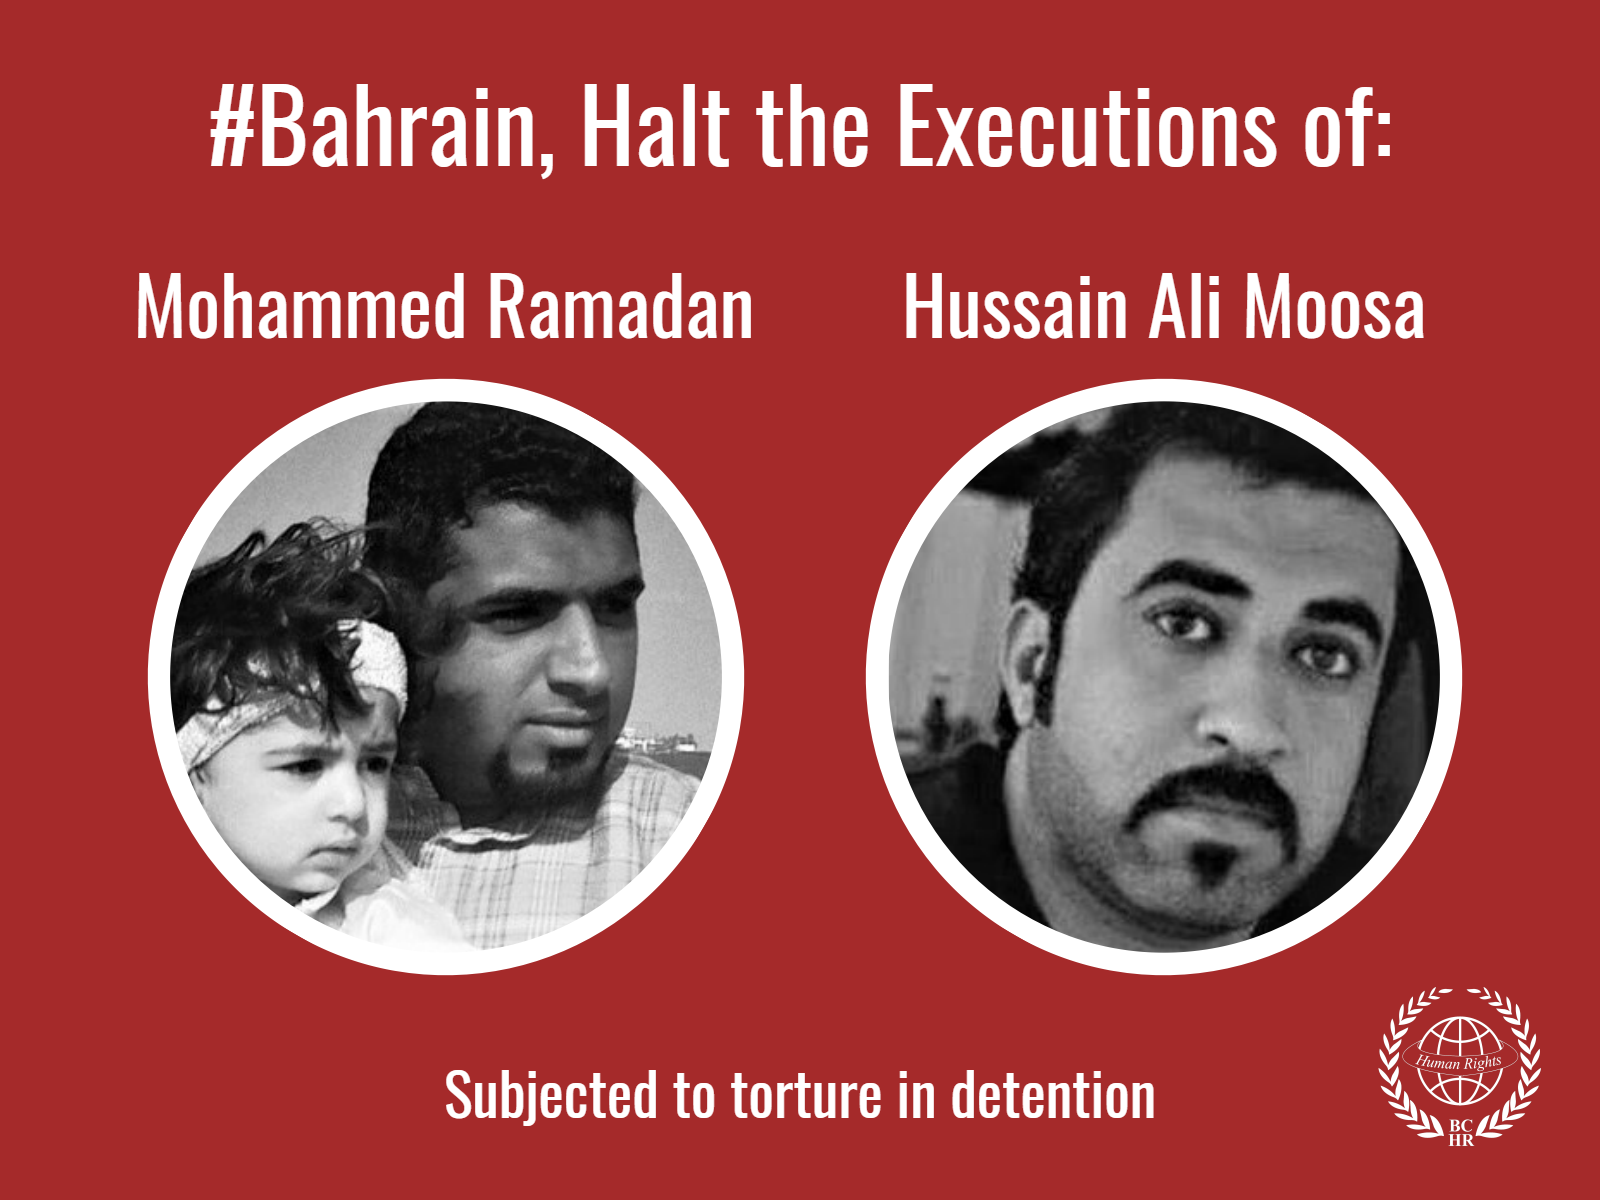 Halt the Executions of Mohammed Ramadan and Hussain Ali Moosa